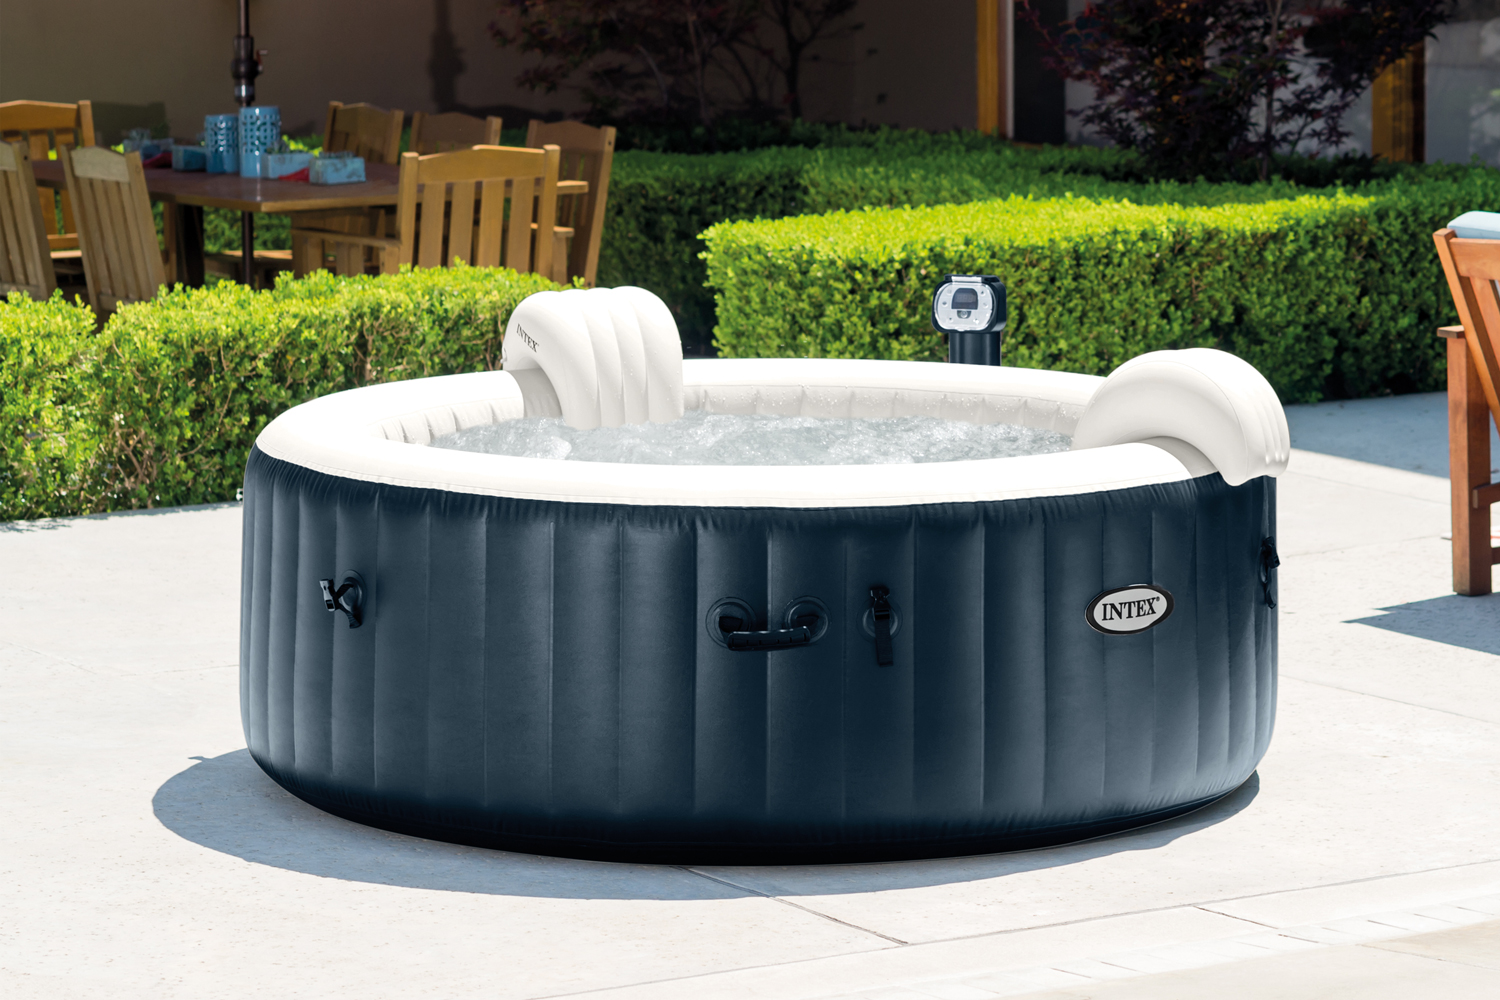 Jacuzzi Pool Temperature Intex Pure Spa 6 Person Inflatable Portable Heated Bubble